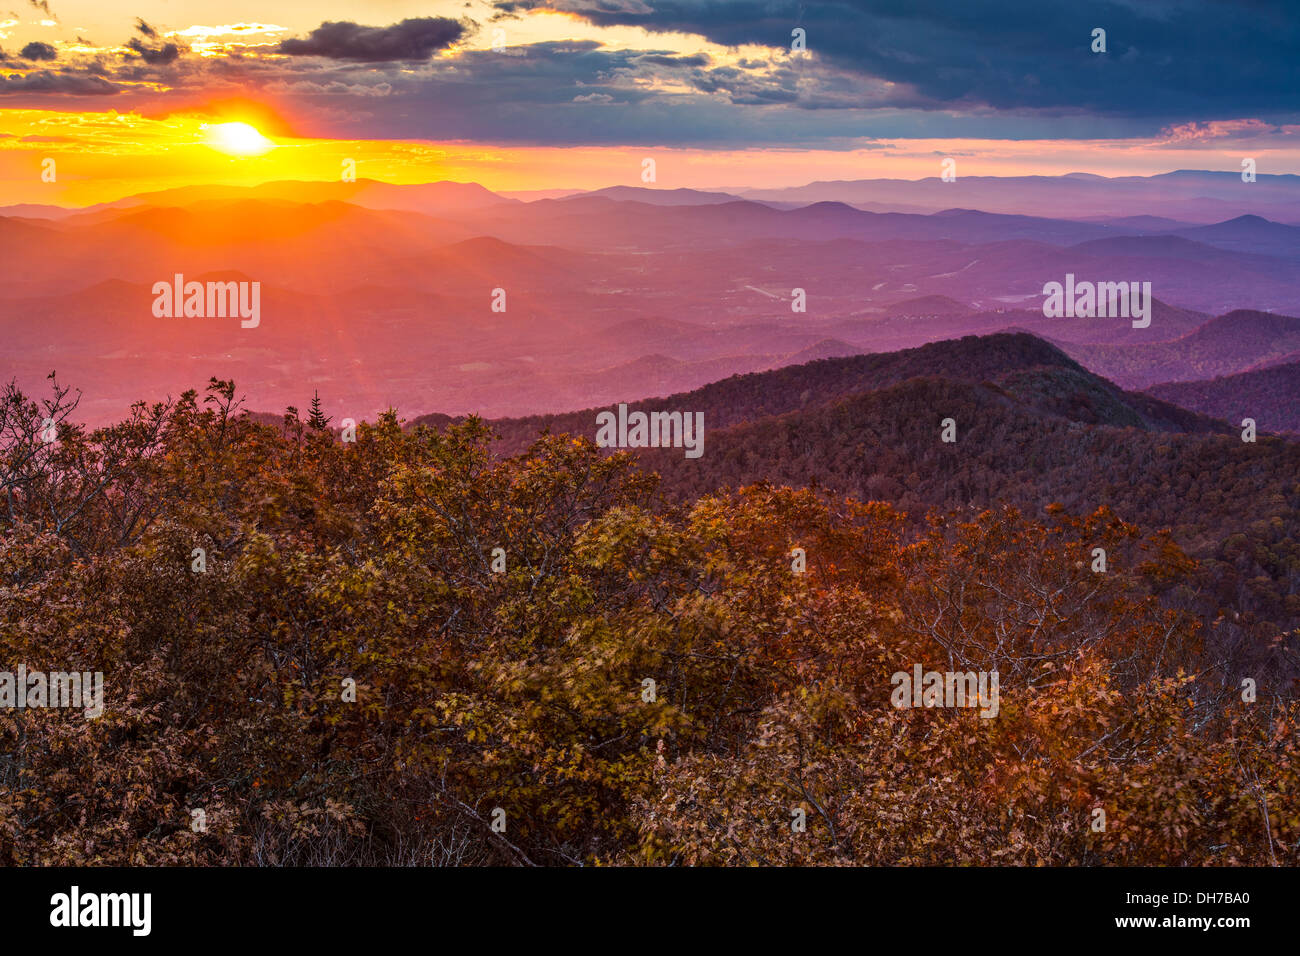 Blue Ridge Mountains at sunset in north Georgia, USA. - Stock Image